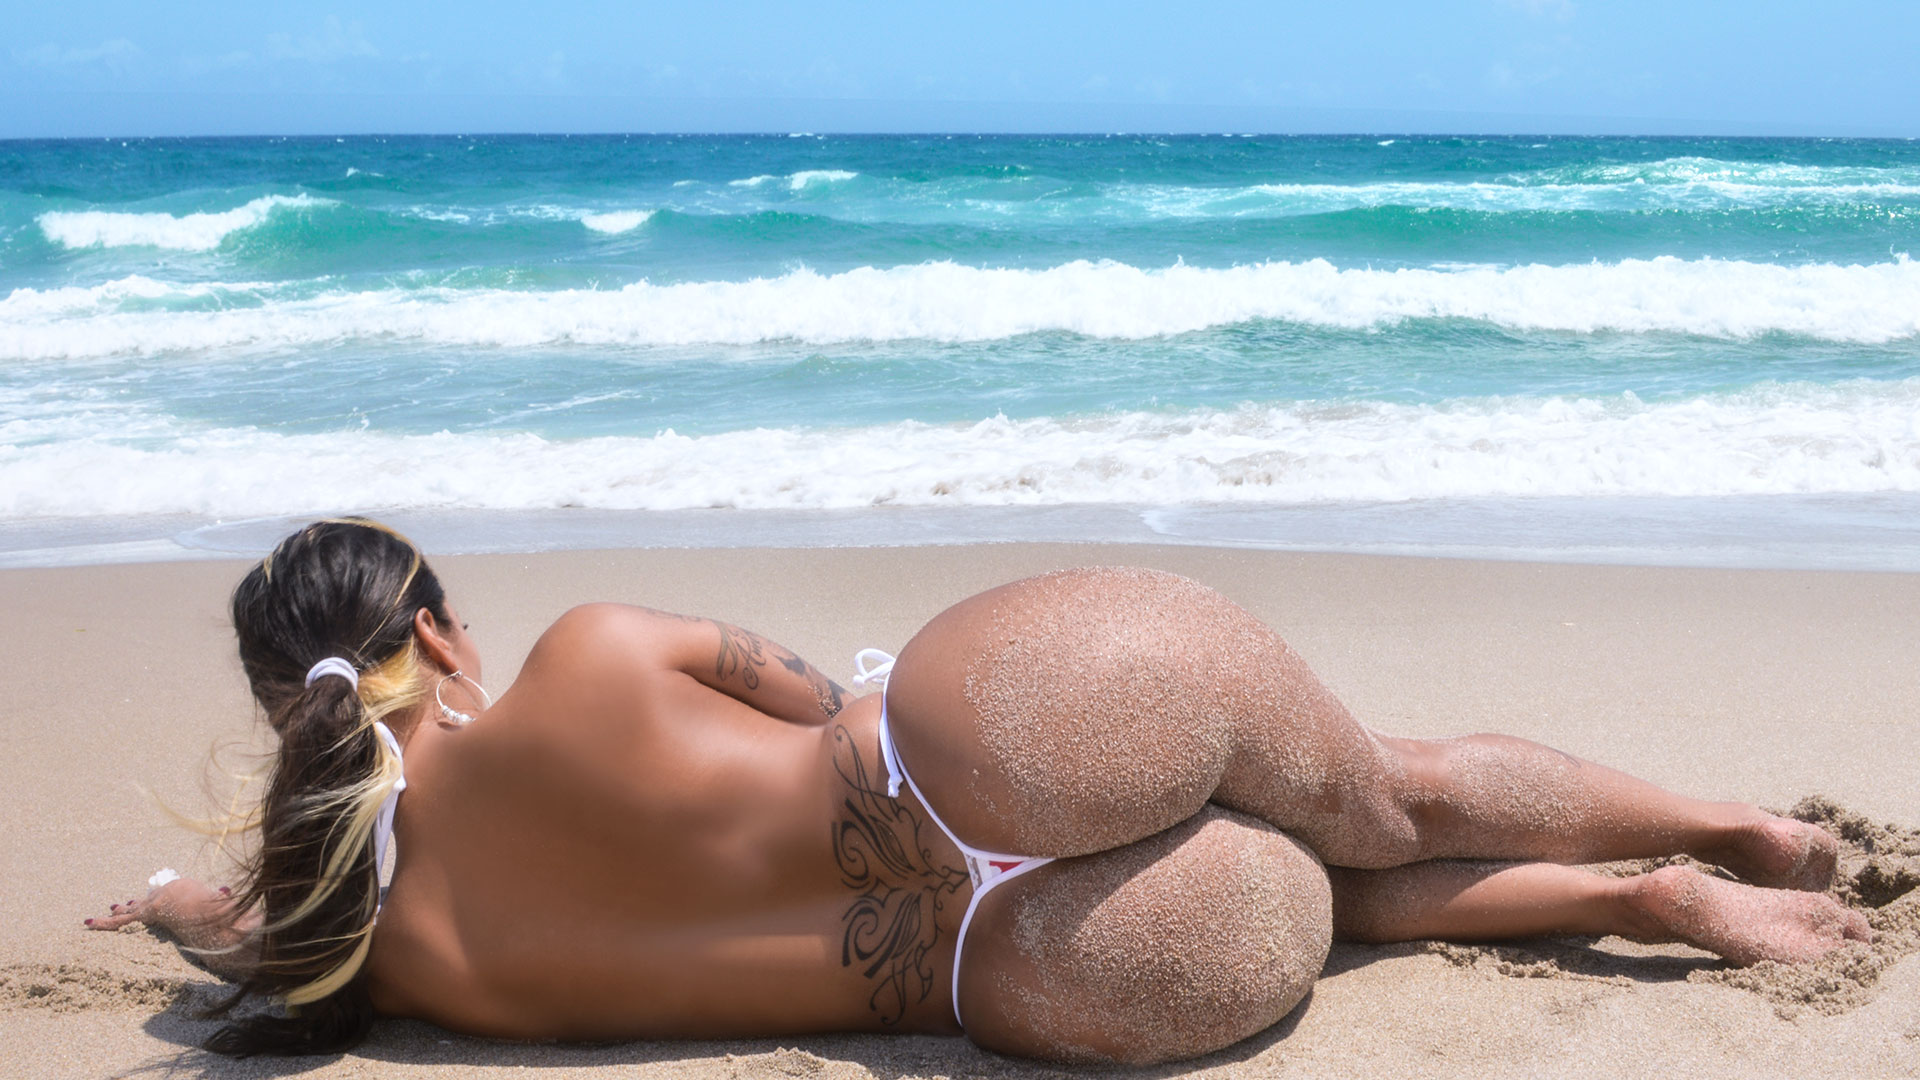 girls-with-big-butt-on-nude-beach-married-swingers-sex-pictures